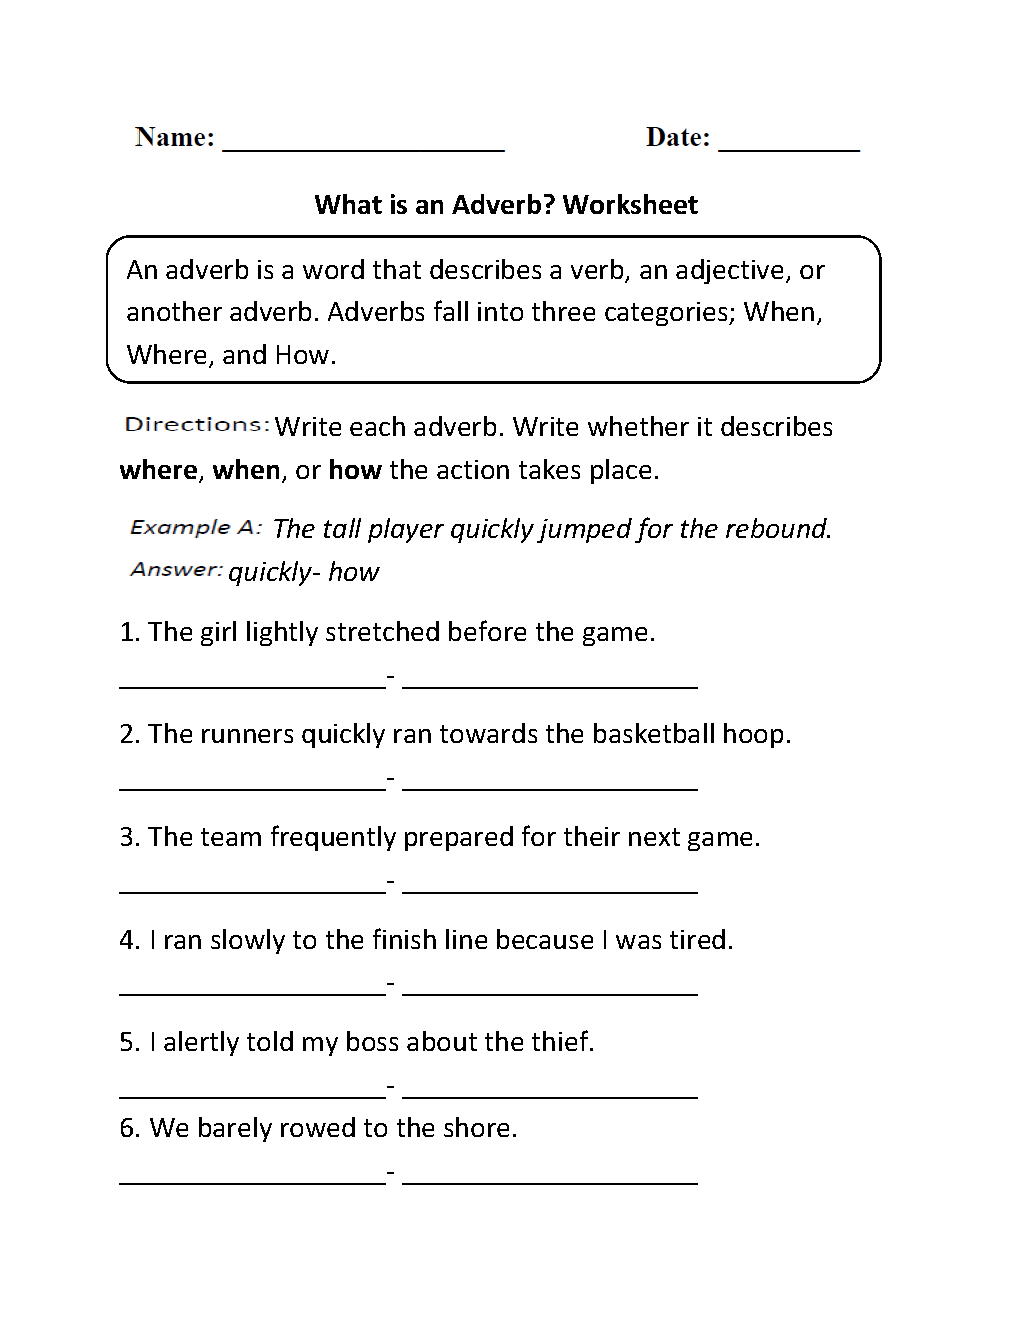 Worksheets Adverb Worksheet parts speech worksheets adverb what is an worksheets